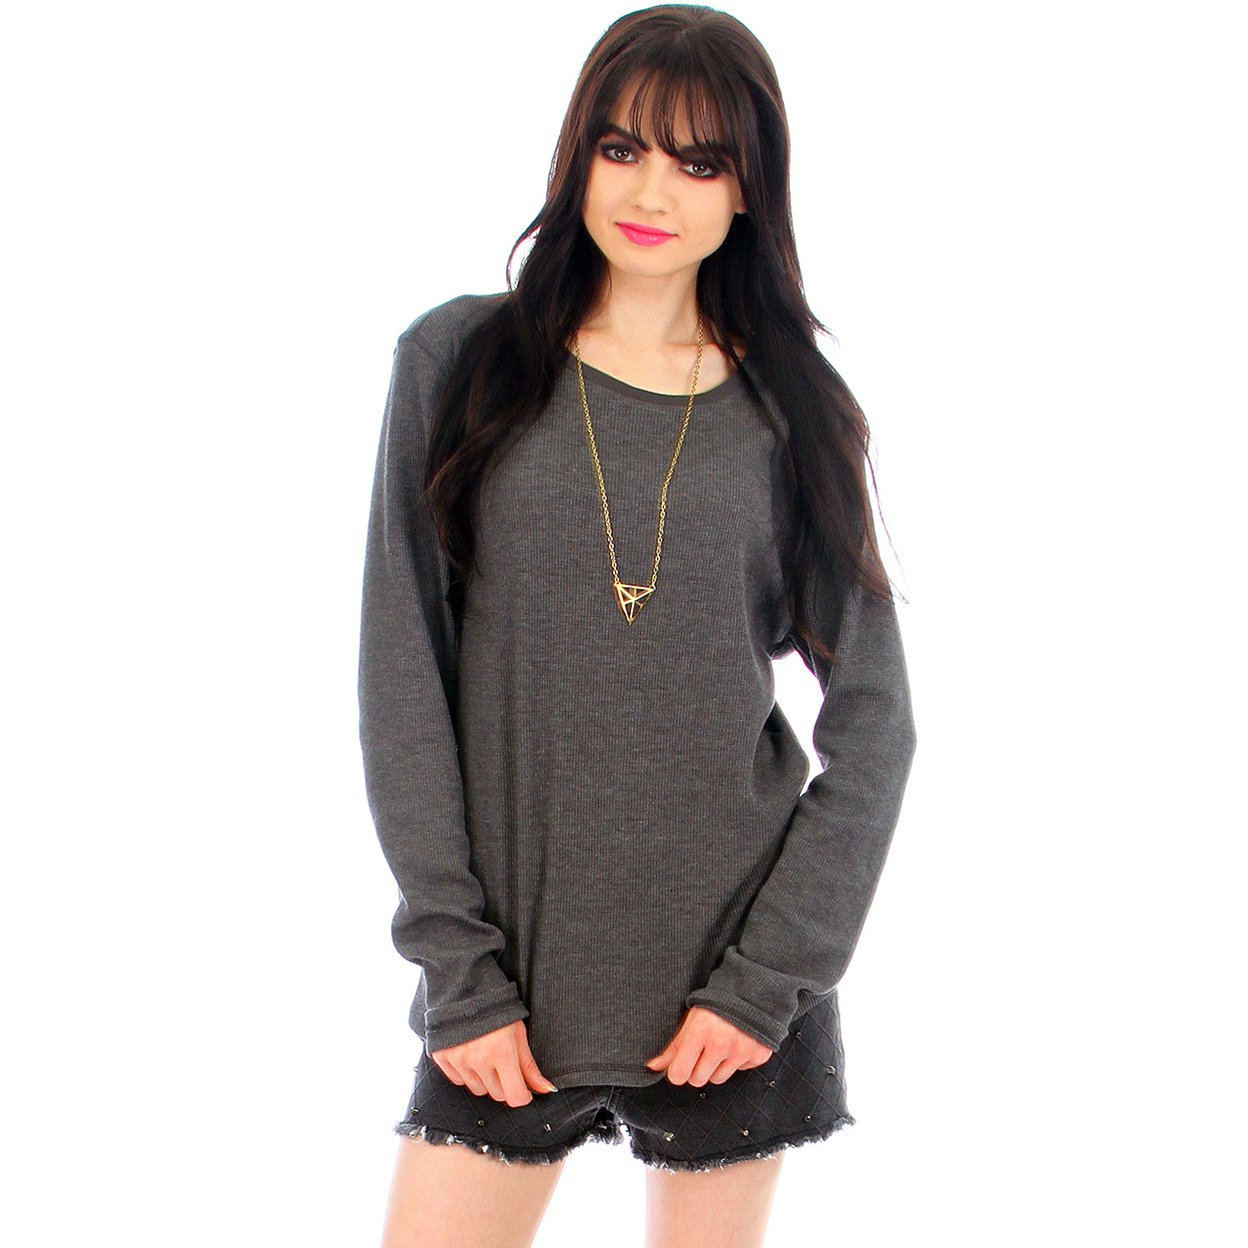 Long Sleeve Thermal Tops - Grey, Small 54ca78a3493d6fa4020007e9